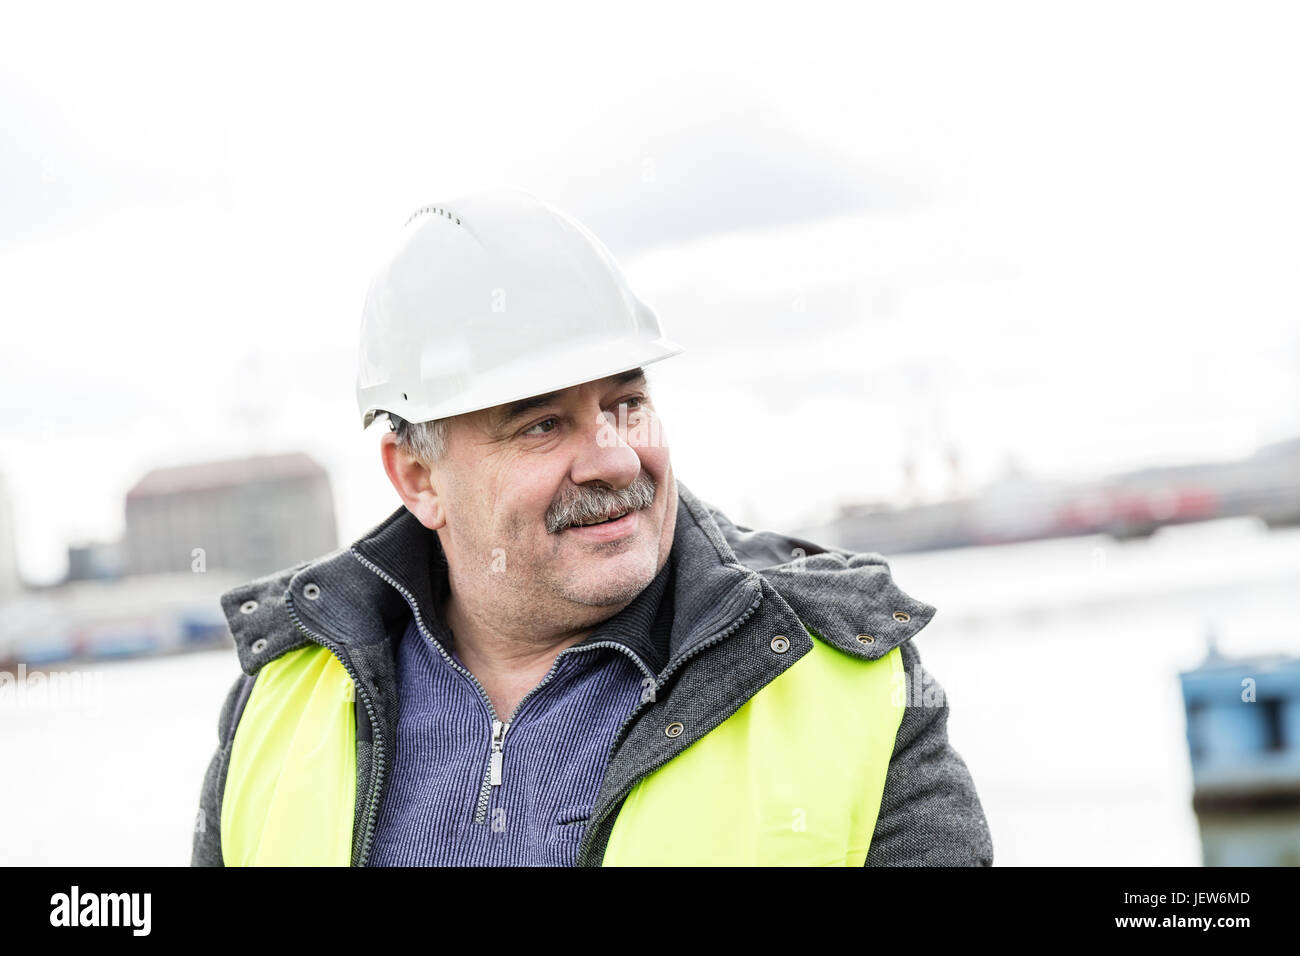 Senior engineer builder at the construction site in a port. Wearing safety helmet and yellow vest. - Stock Image